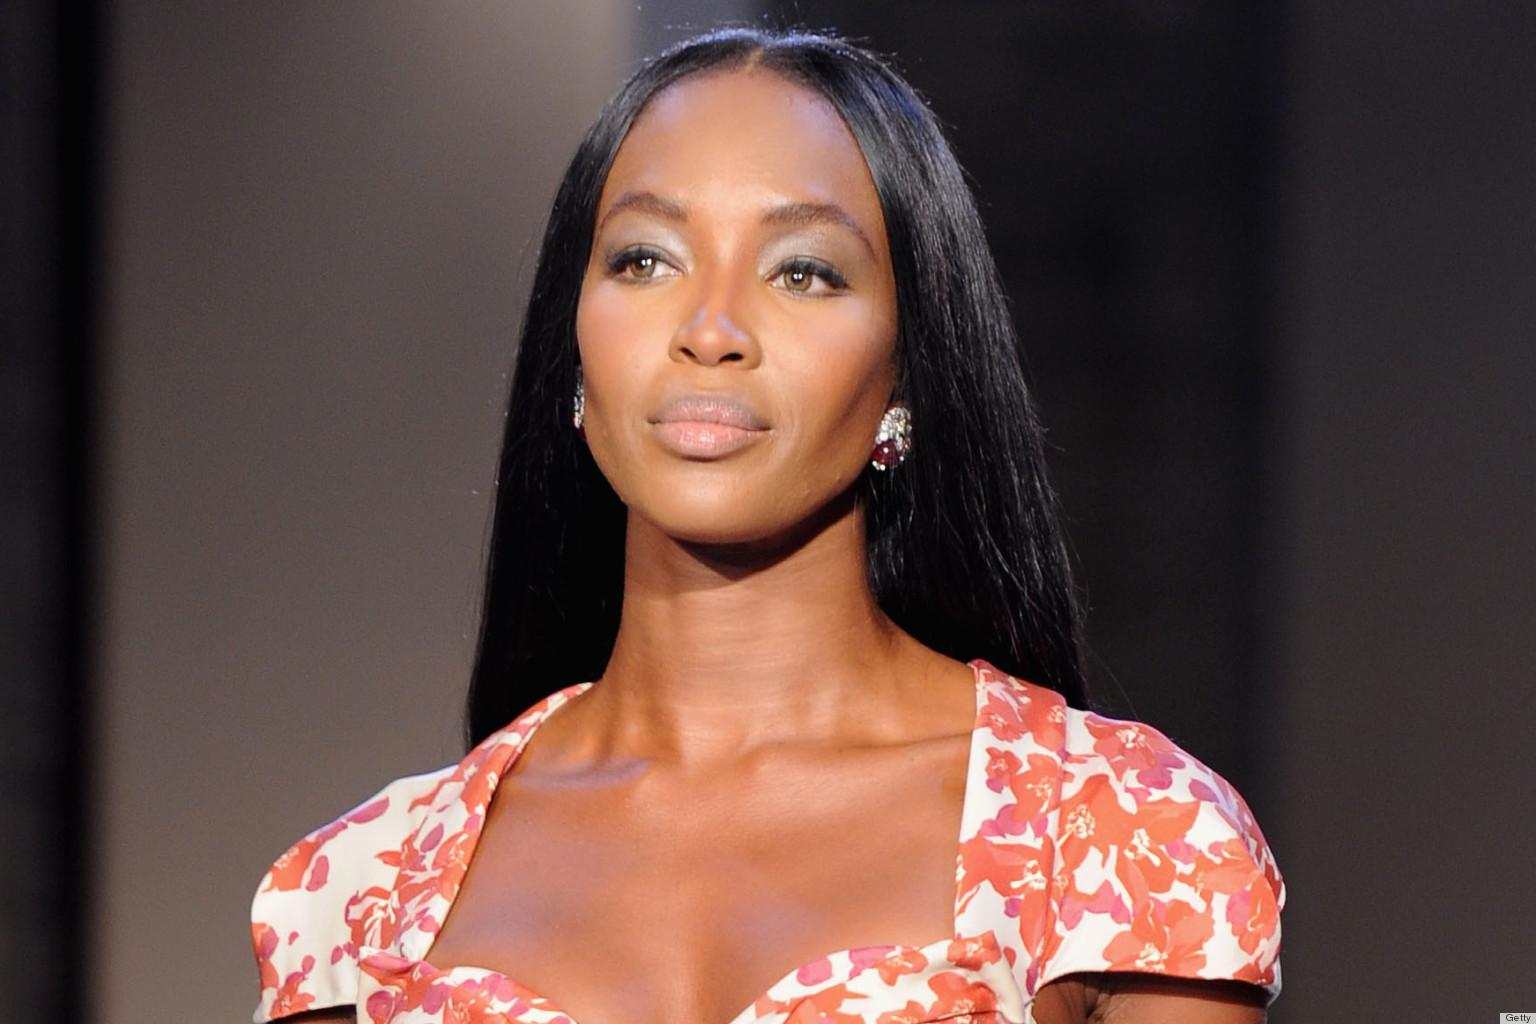 Naomi Campbell Wallpapers | Celebrities Wallpapers Gallery - PC ...